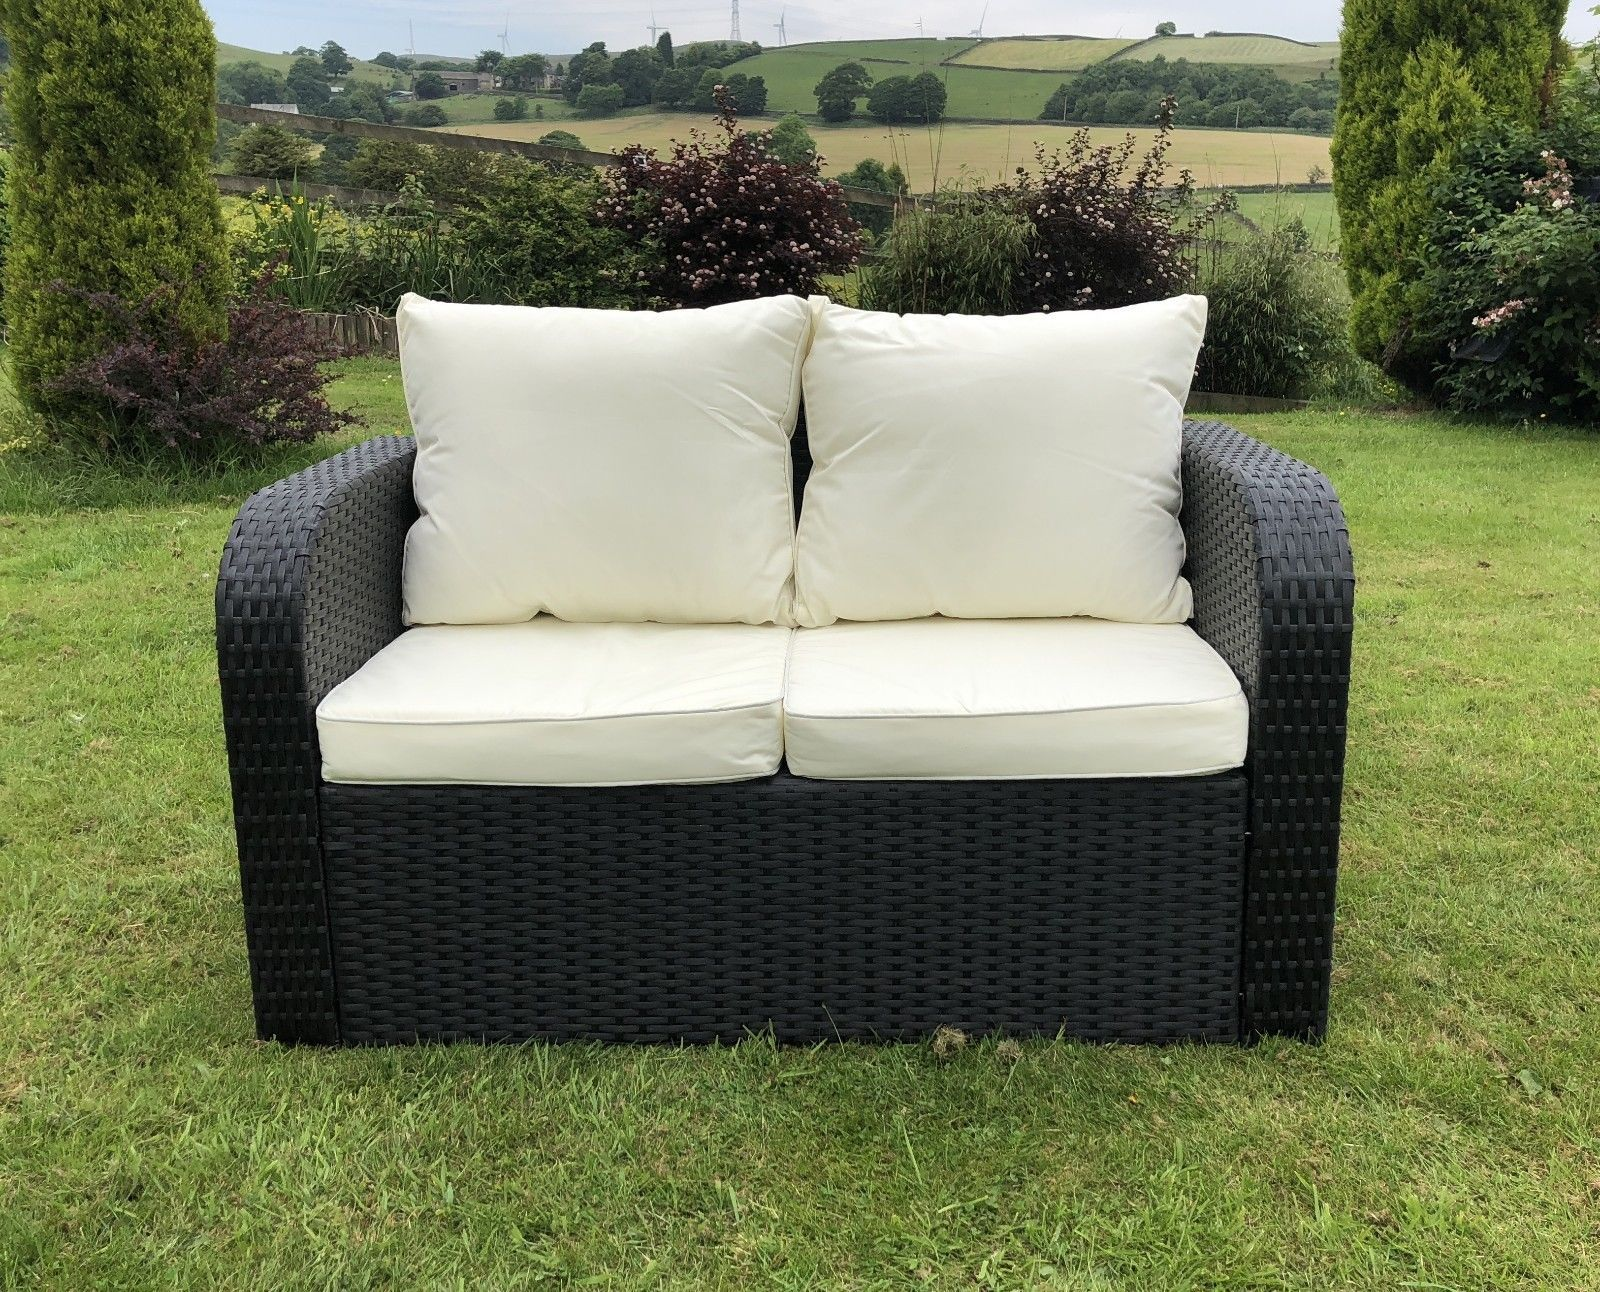 Details about Black or Mixed Brown Rattan Mix and Match